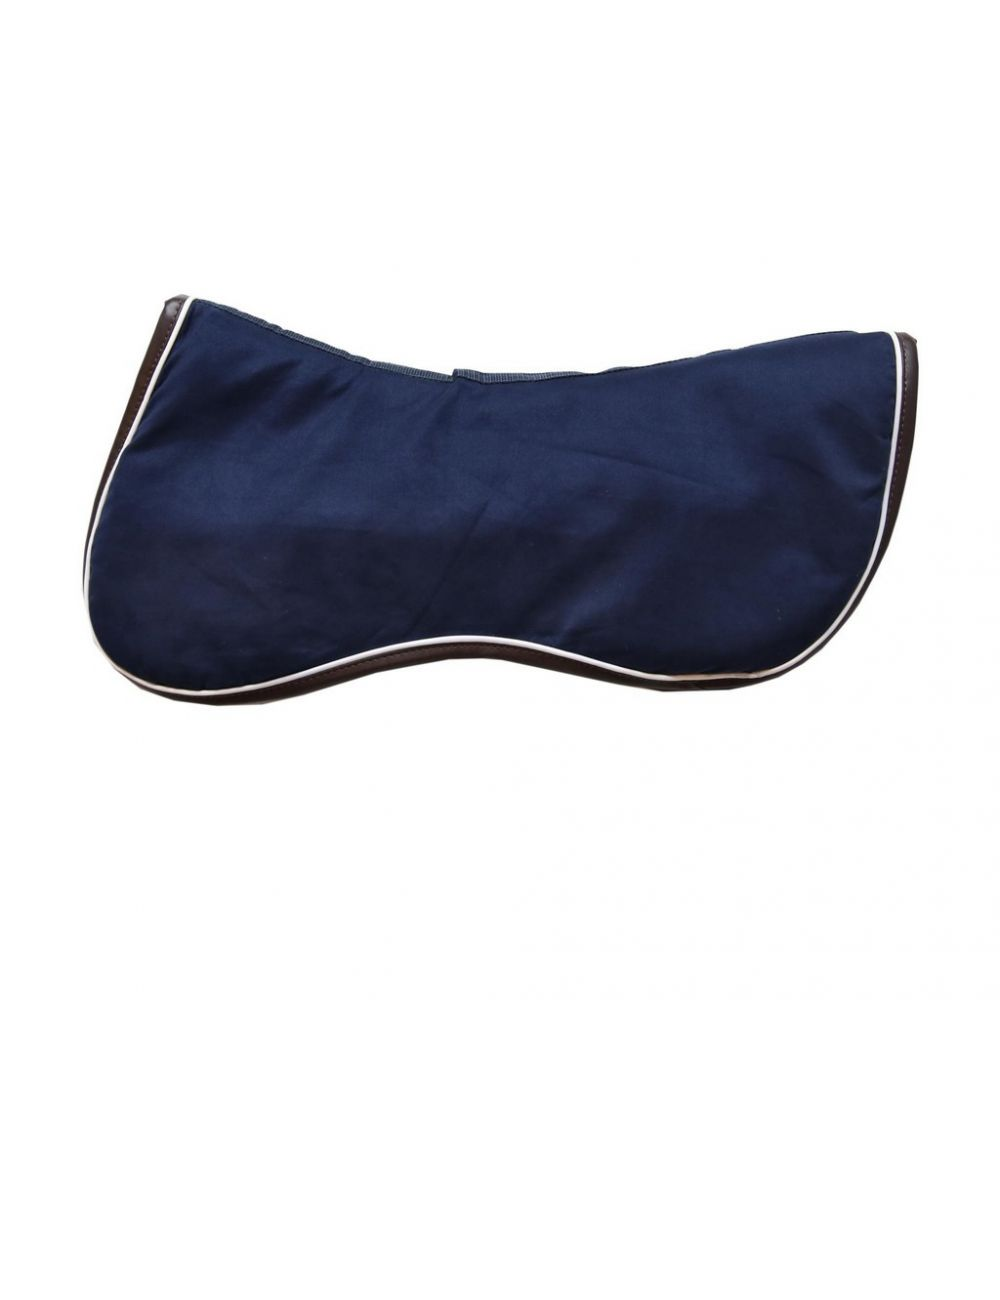 Kentucky Horsewear Half Pad Intelligent Absorb Thick - 1